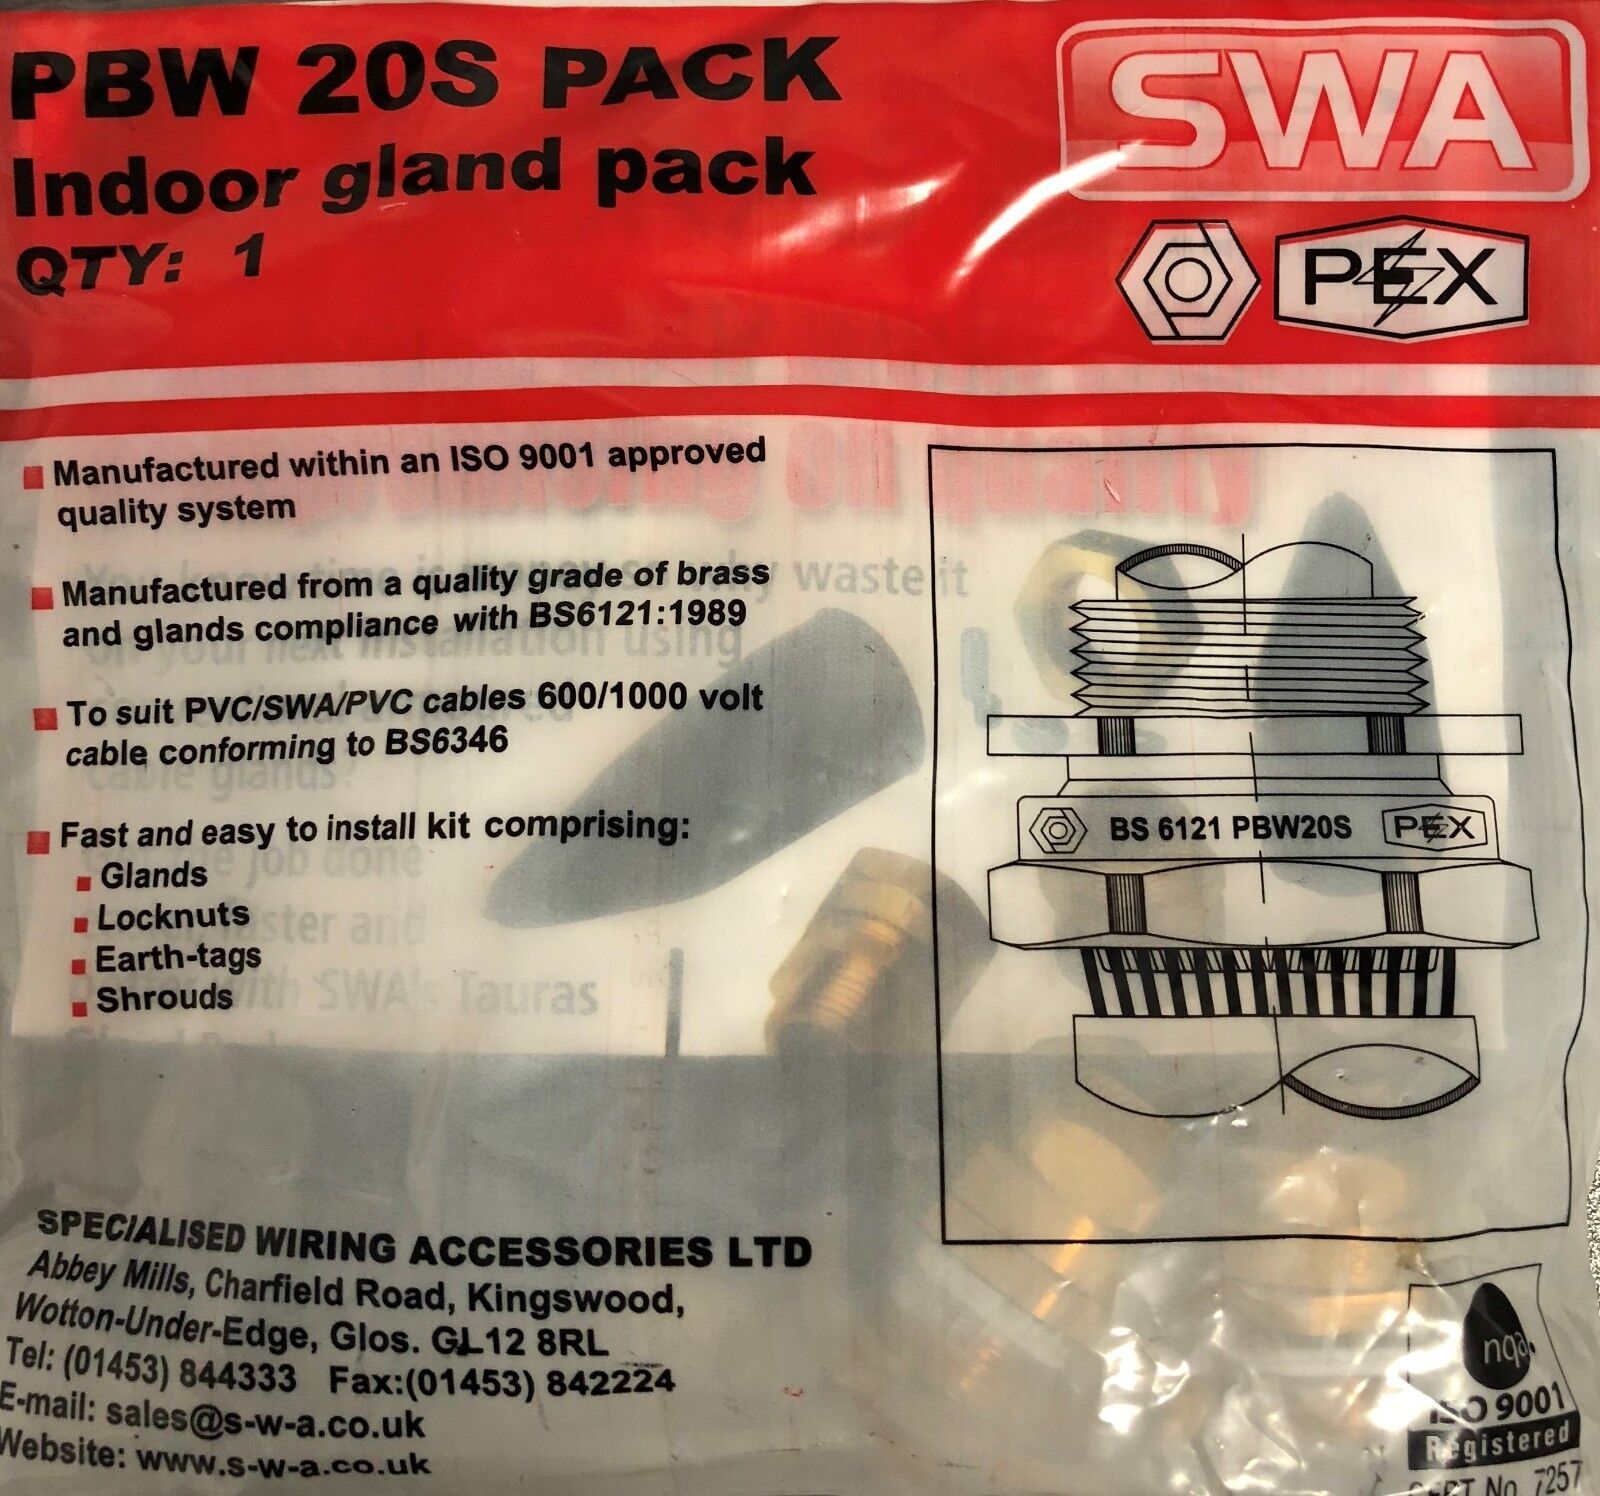 Heavy Duty Pex Swa Branded Armoured Cable Gland Pack Bw20s2025 Wiring Bw20s20 1 Of 8free Shipping See More